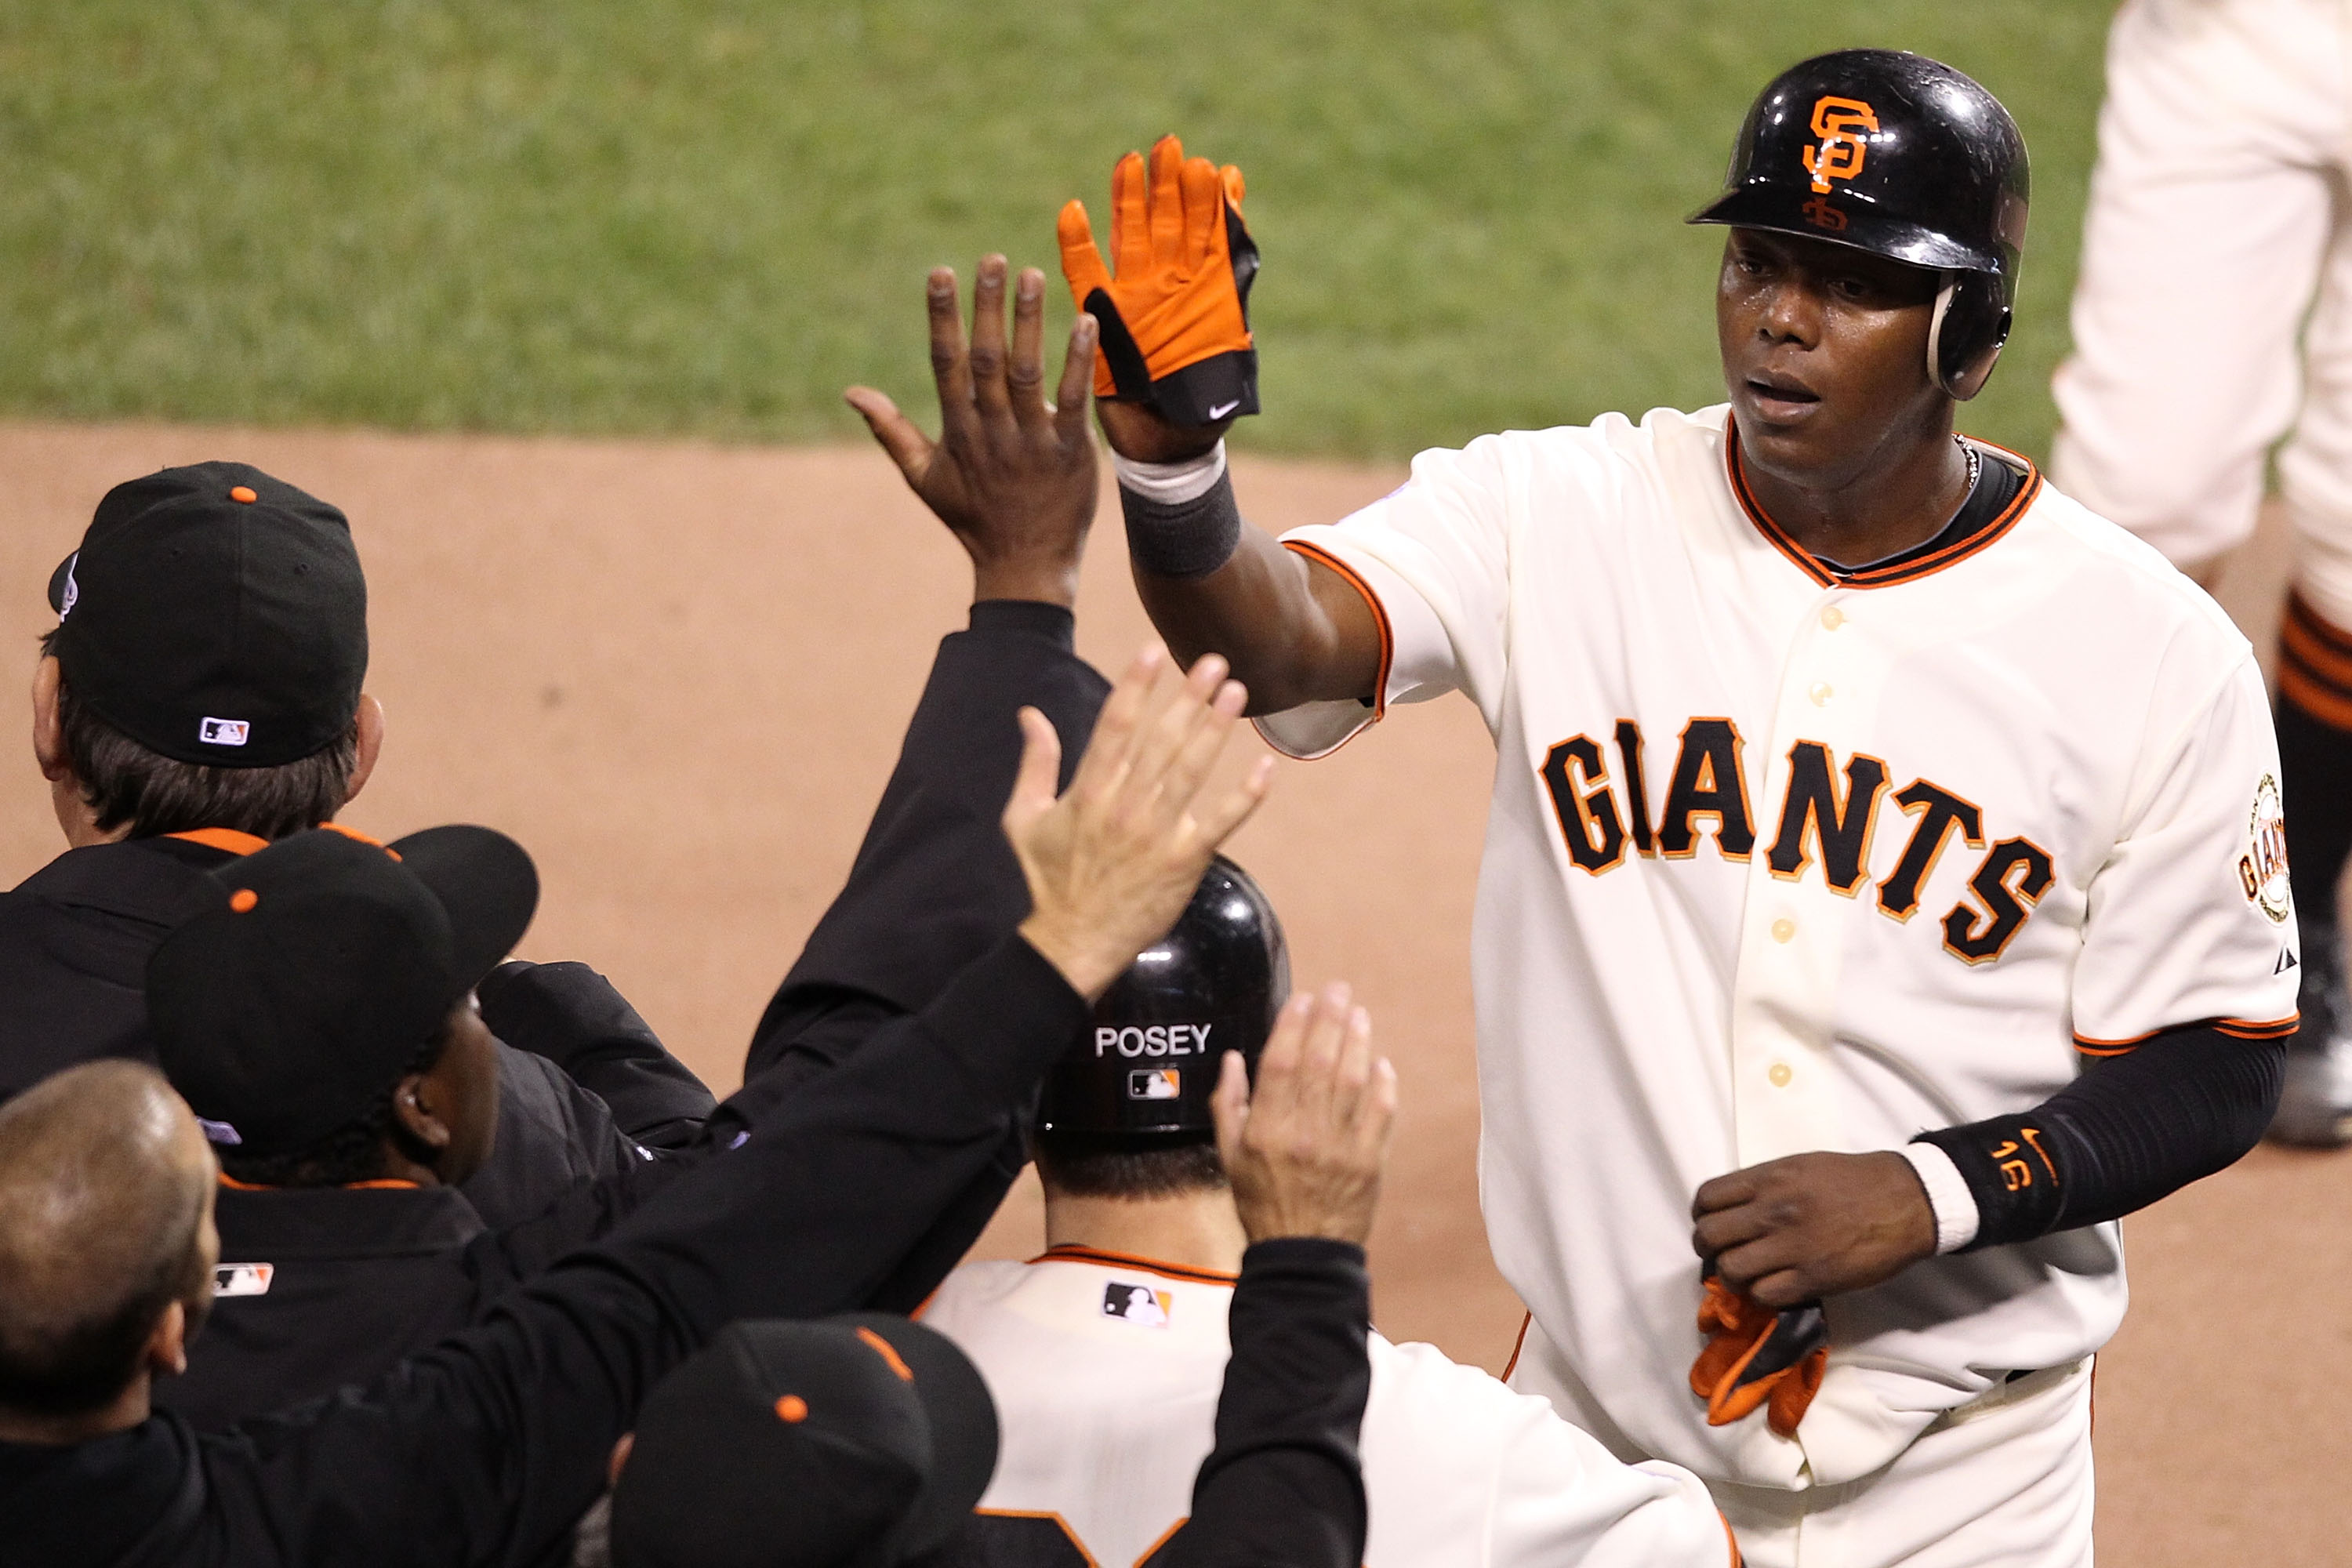 SAN FRANCISCO - OCTOBER 27:  Edgar Renteria #16 of the San Francisco Giants celebrates after scoring in the eighth inning against the Texas Rangers in Game One of the 2010 MLB World Series at AT&T Park on October 27, 2010 in San Francisco, California.  (P